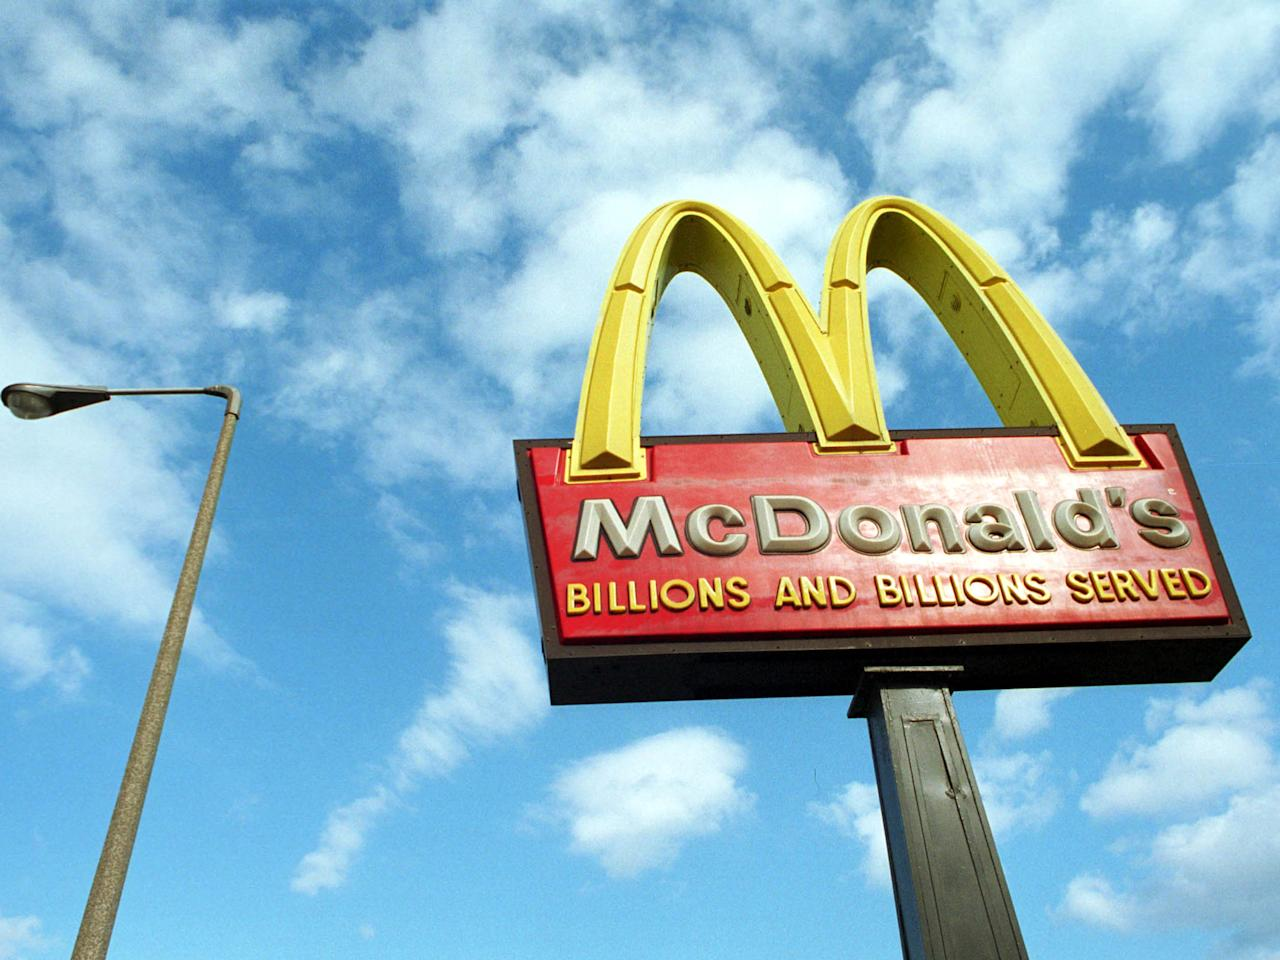 94-year-old woman celebrates more than four decades working at McDonald's - and eats the food every shift